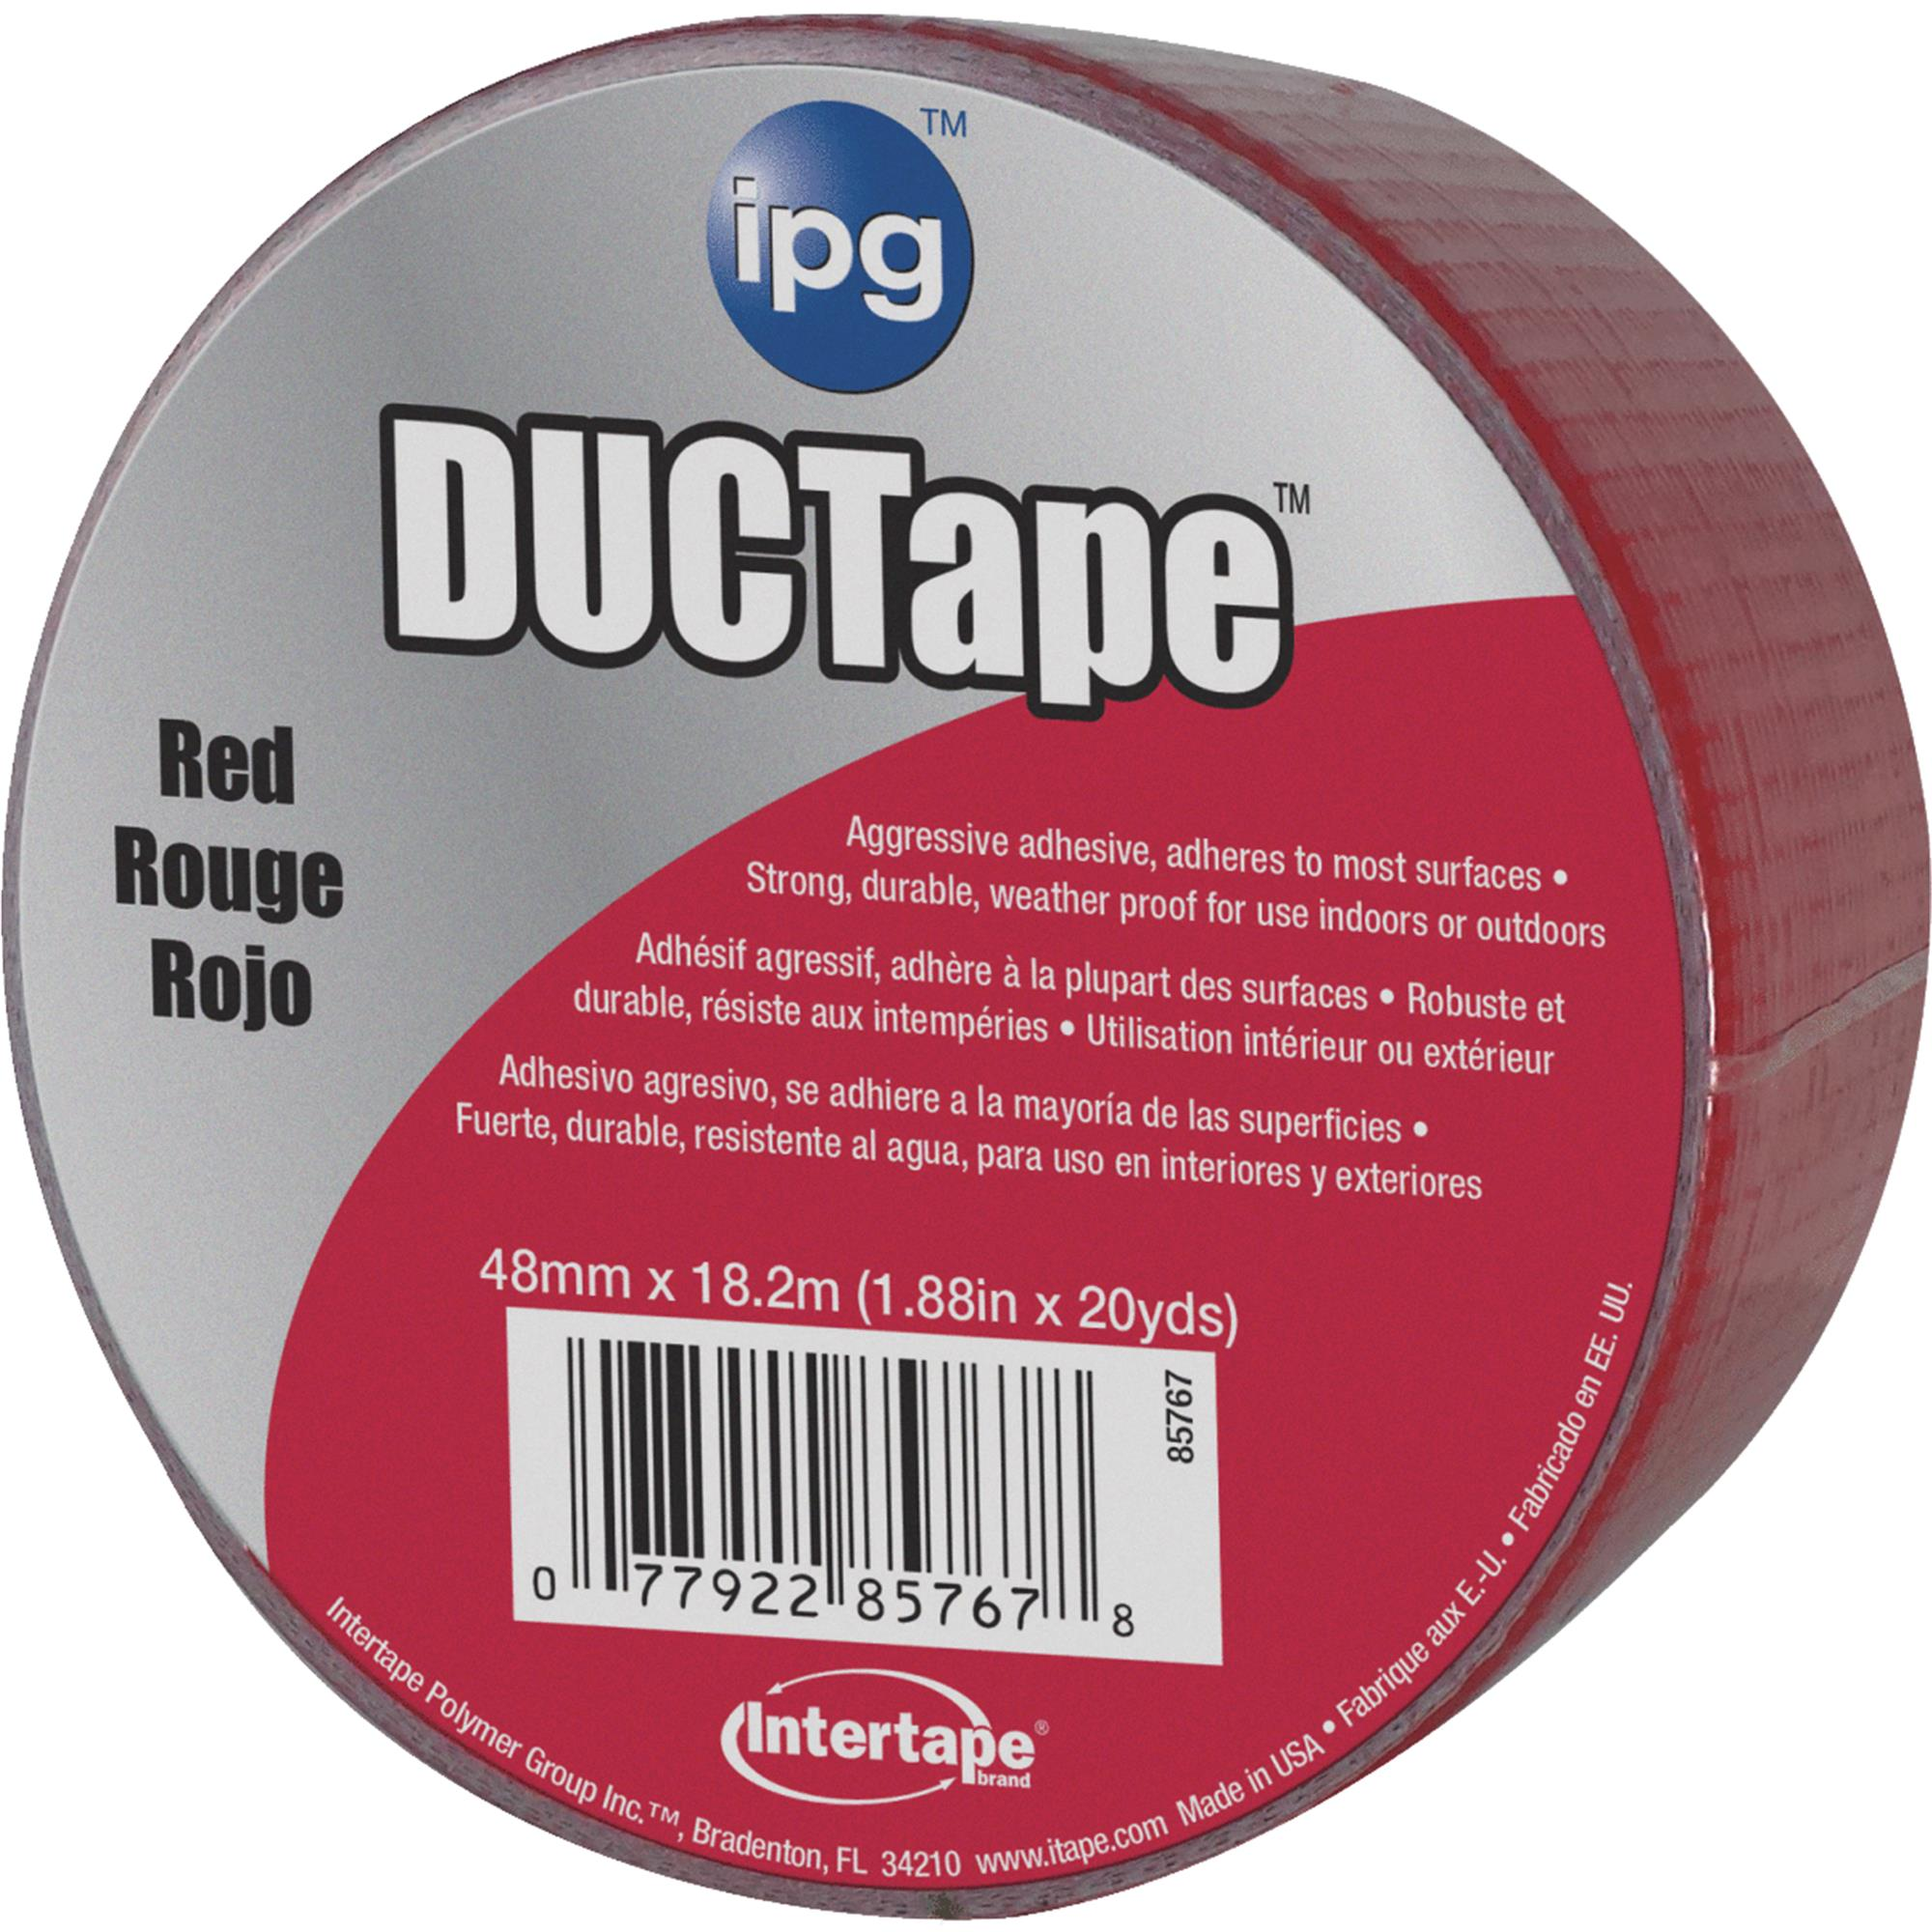 Intertape AC20 DUCTape General Purpose Duct Tape